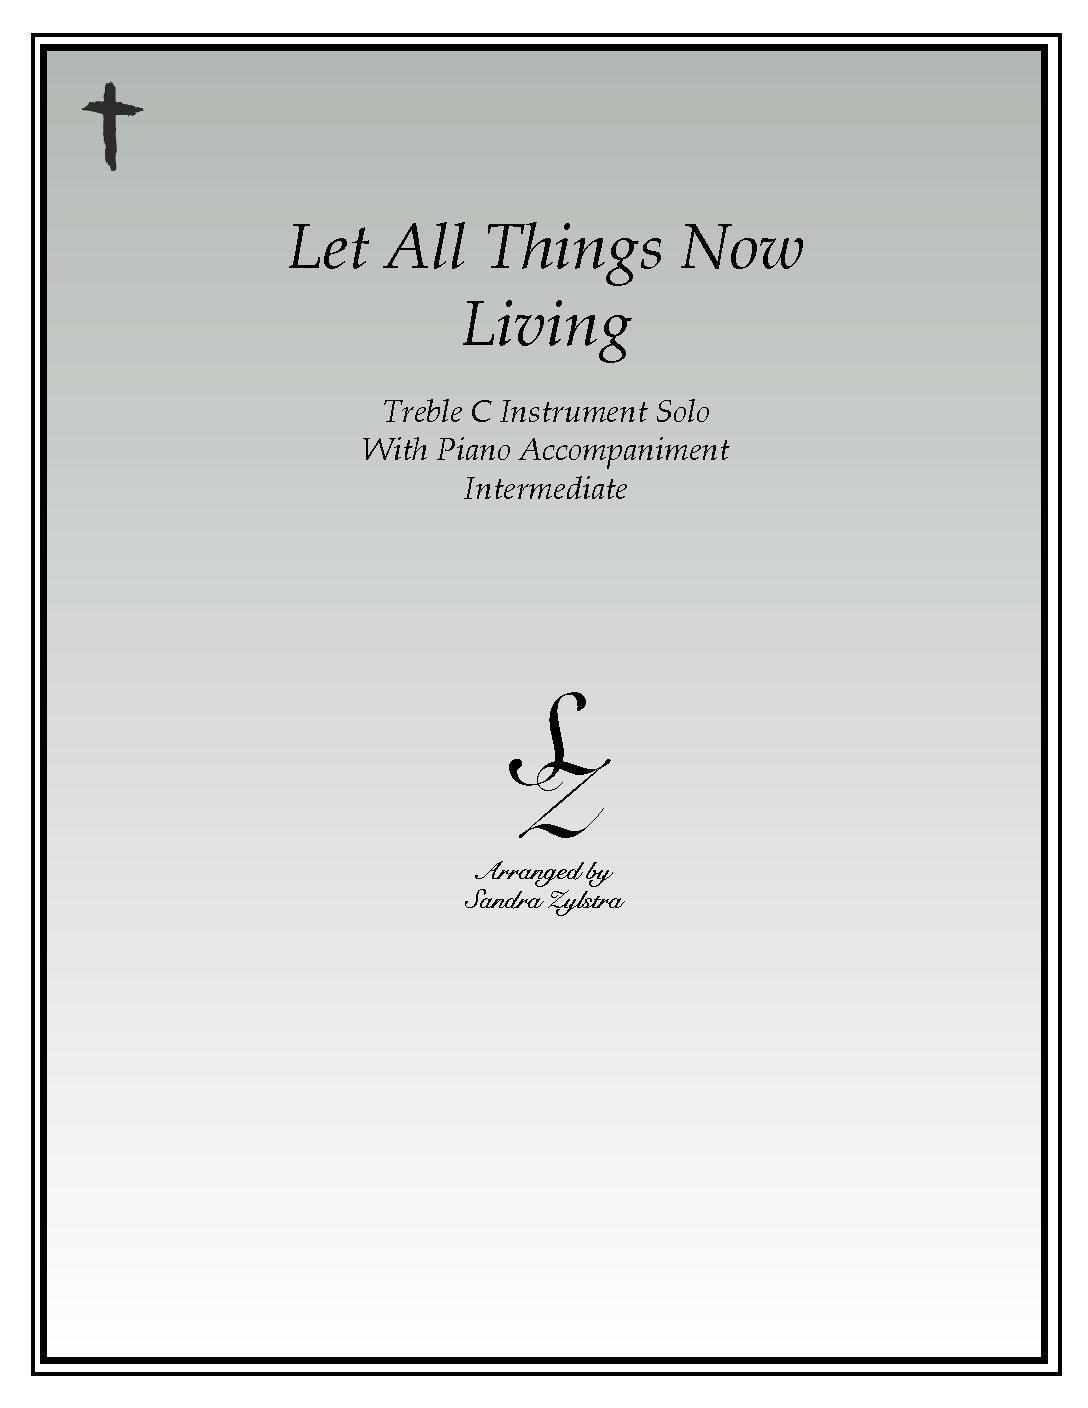 Let All Things Now Living -Treble C Instrument Solo